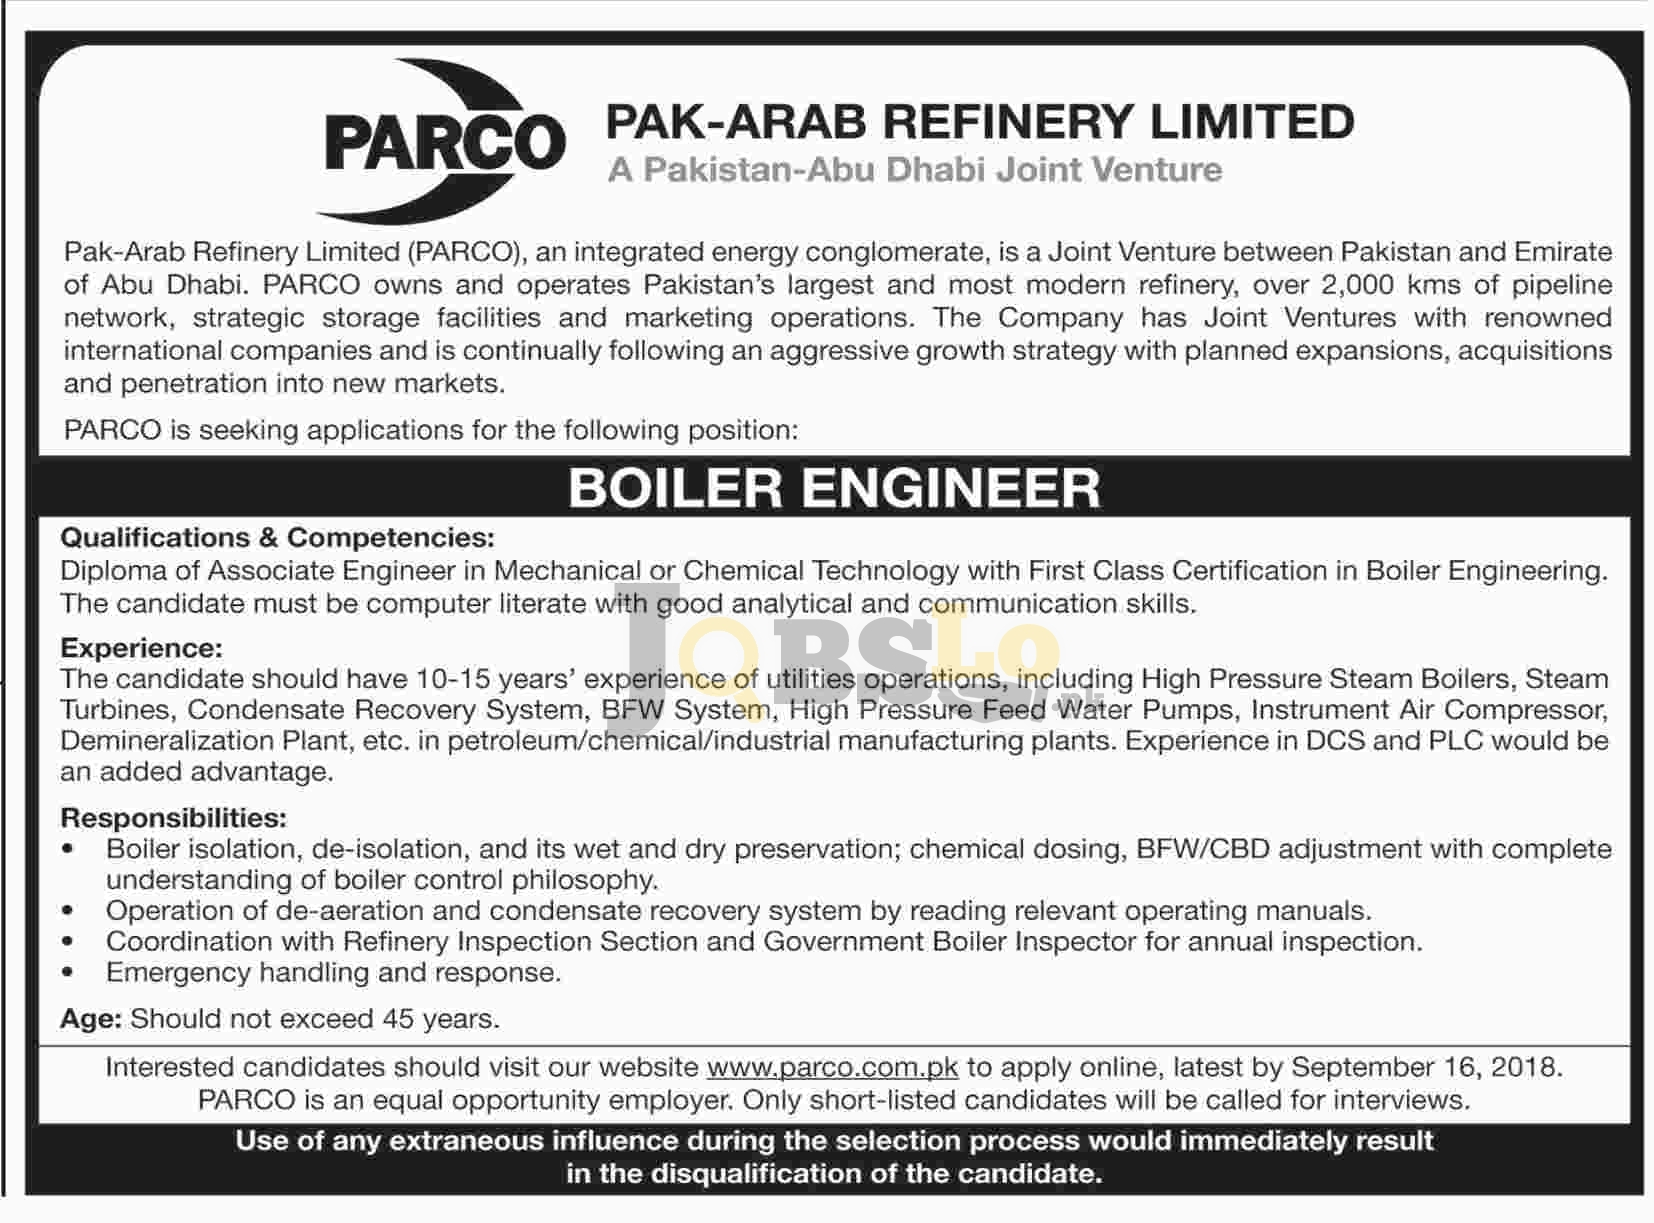 Pak-Arab Refinery Limited PARCO Jobs 2018 Apply Online For Boiler Engineer